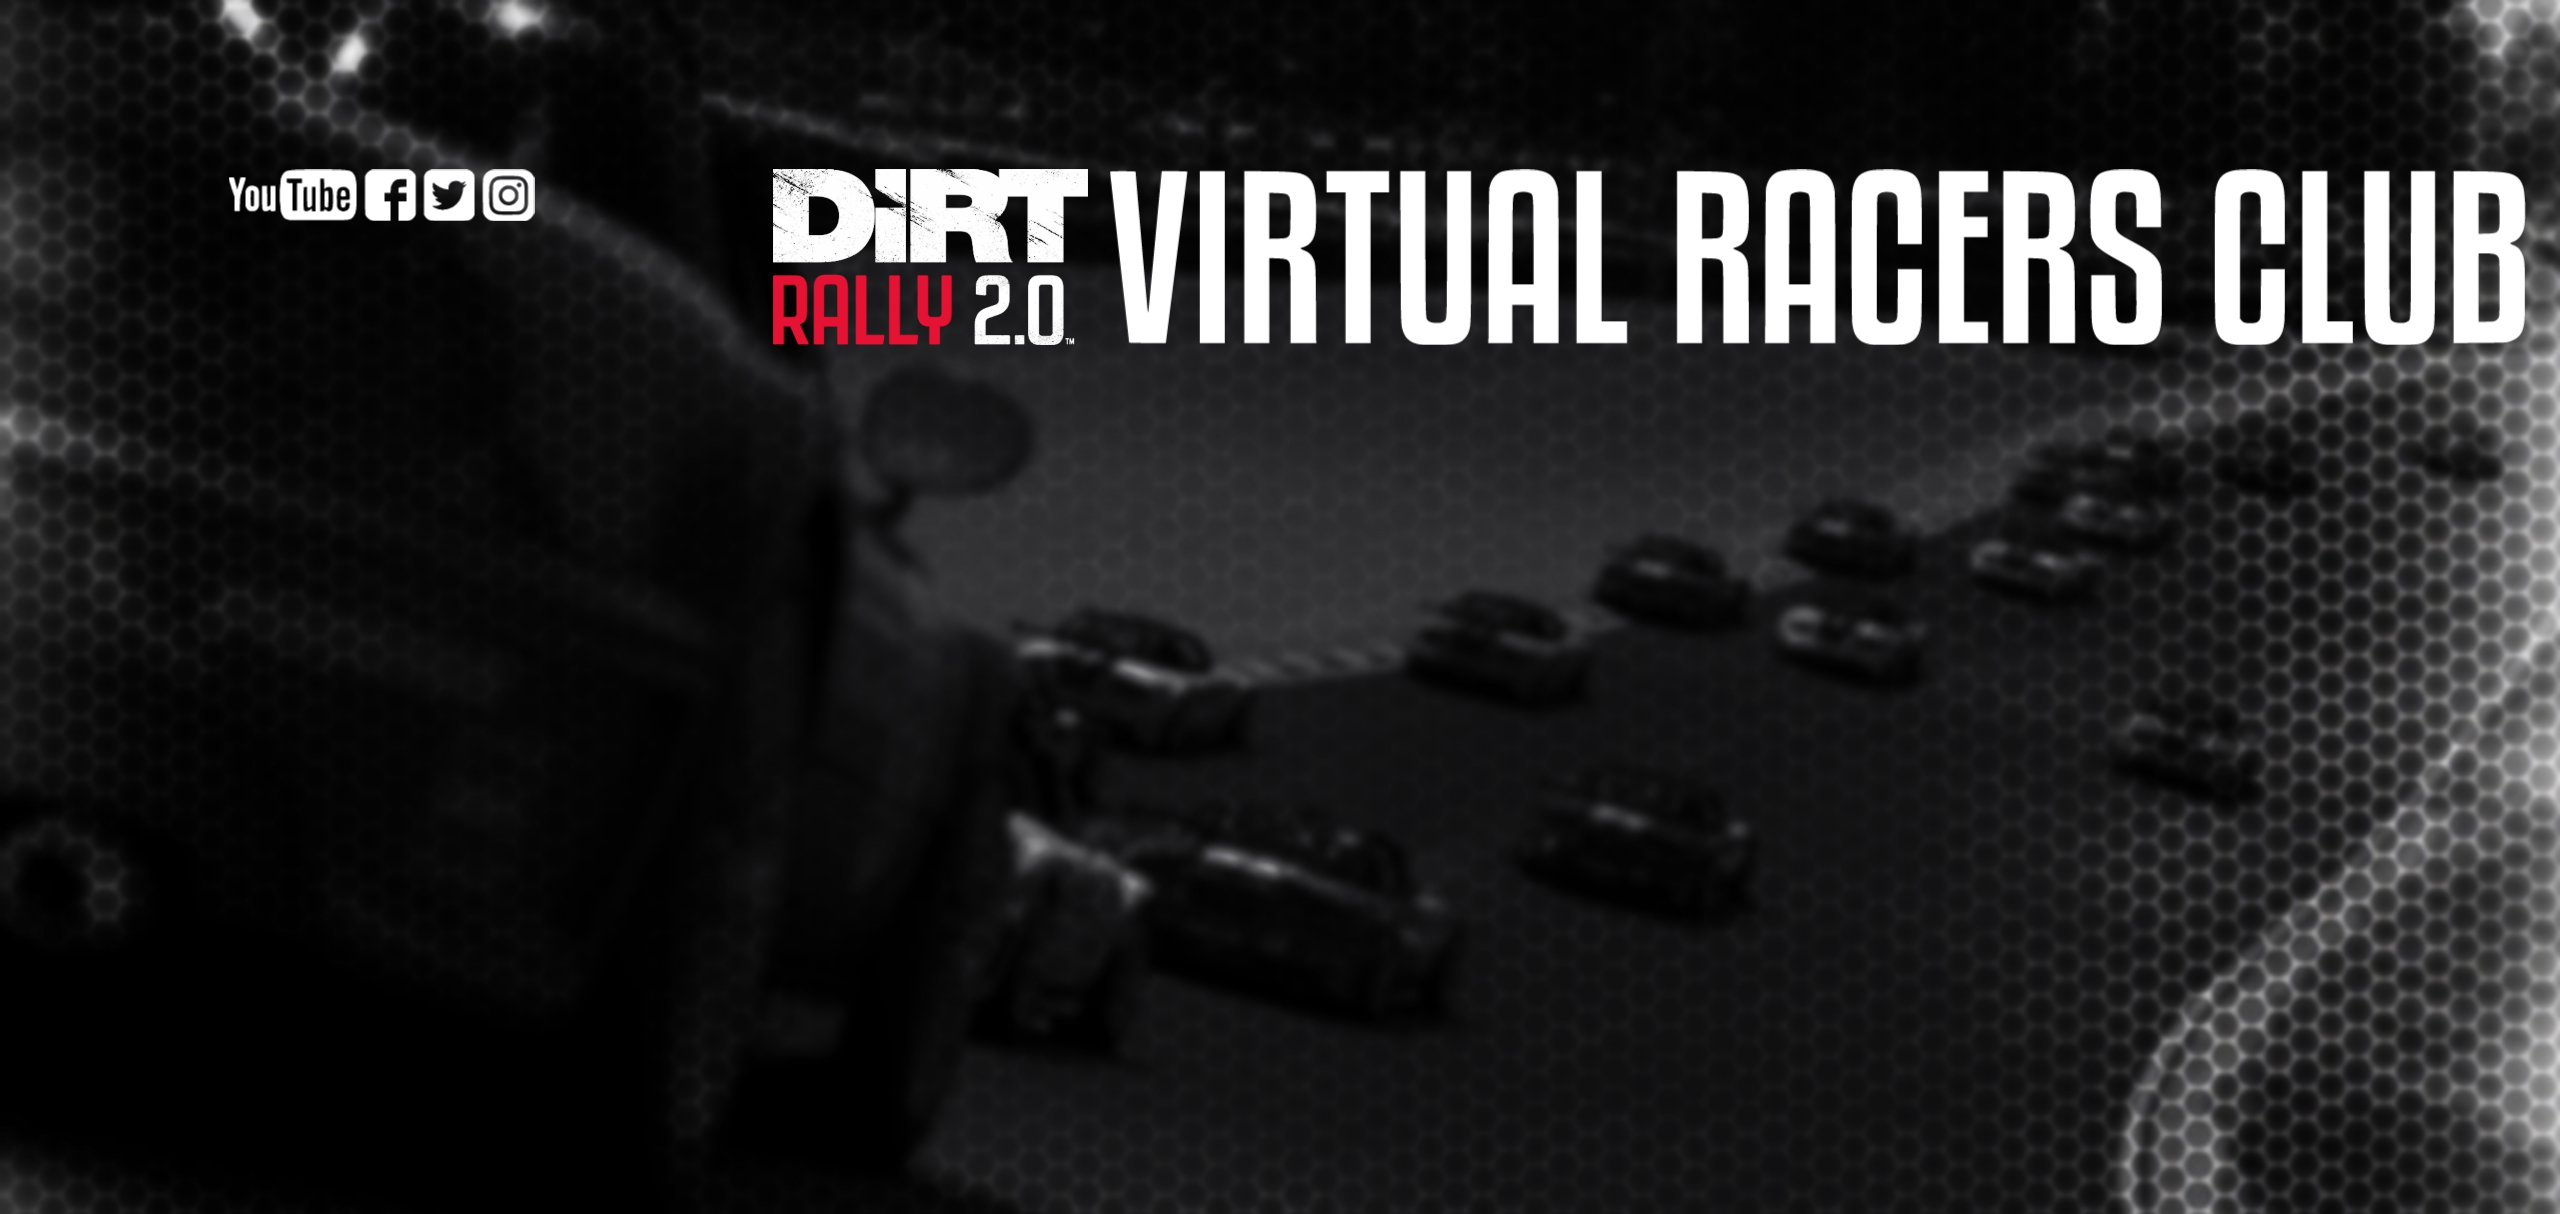 Virtual Racers Club